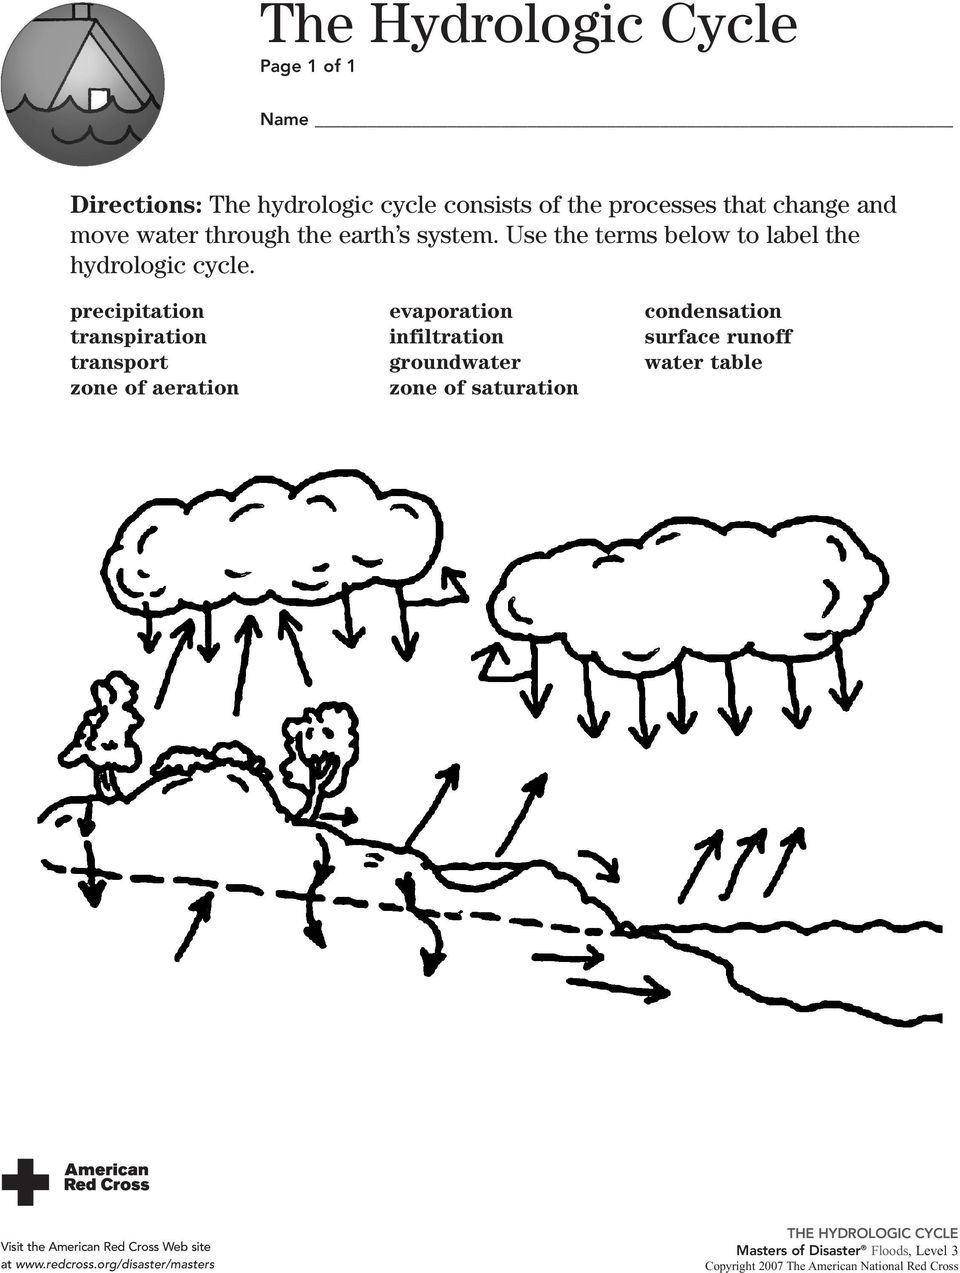 Use the terms below to label the hydrologic cycle.